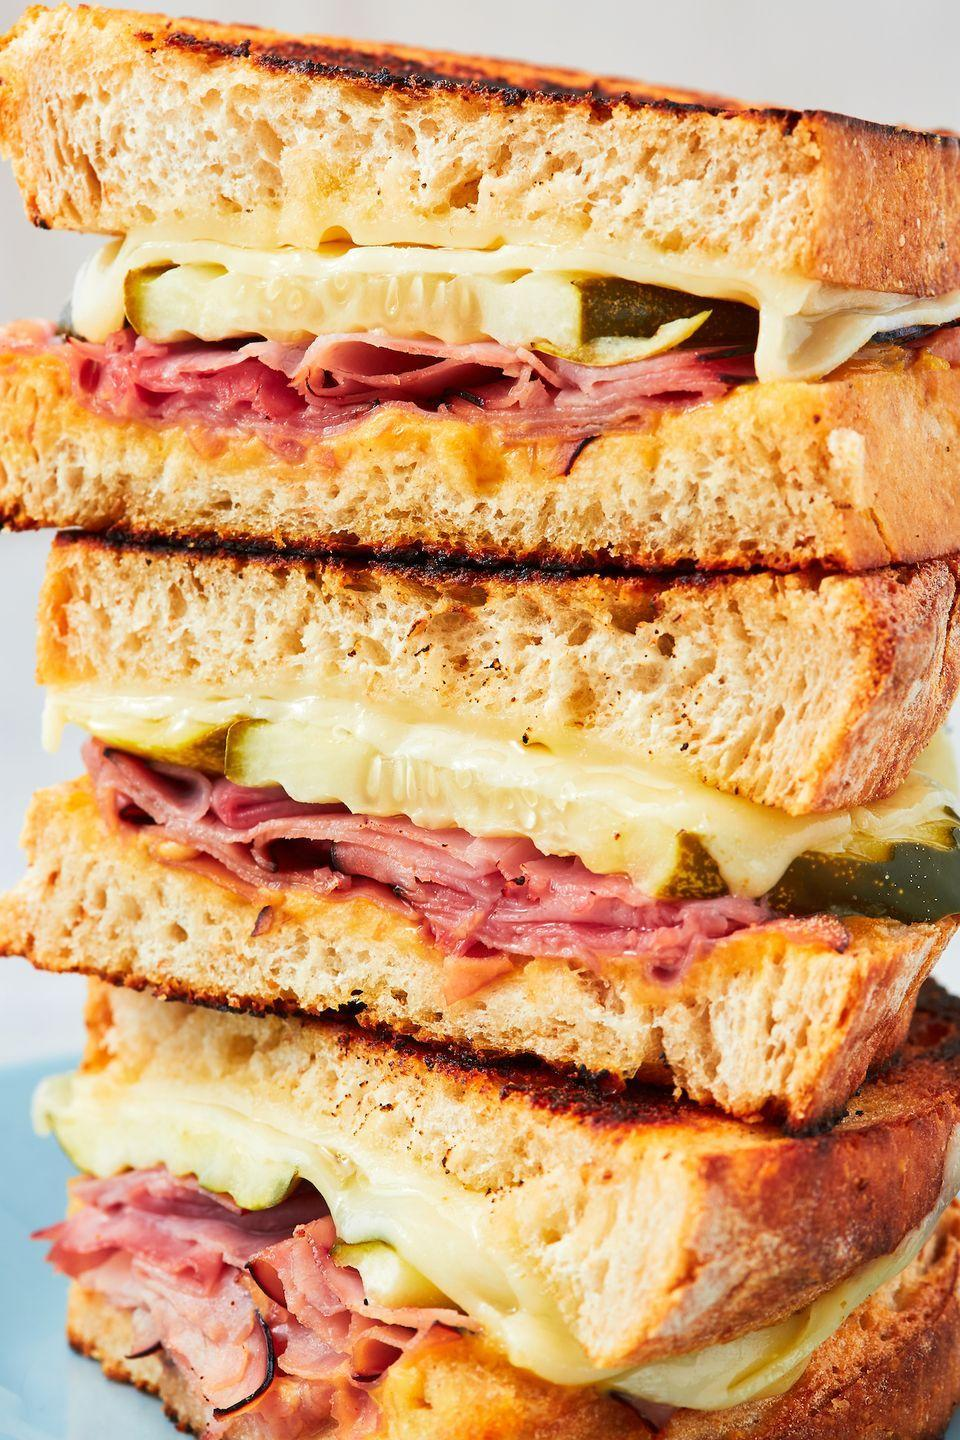 """<p>Keep things simple with these easy (but delish) recipe.</p><p>Get the recipe from <a href=""""https://www.delish.com/cooking/recipe-ideas/a26870550/ham-and-cheese-sandwich-recipe/"""" rel=""""nofollow noopener"""" target=""""_blank"""" data-ylk=""""slk:Delish"""" class=""""link rapid-noclick-resp"""">Delish</a>.</p>"""